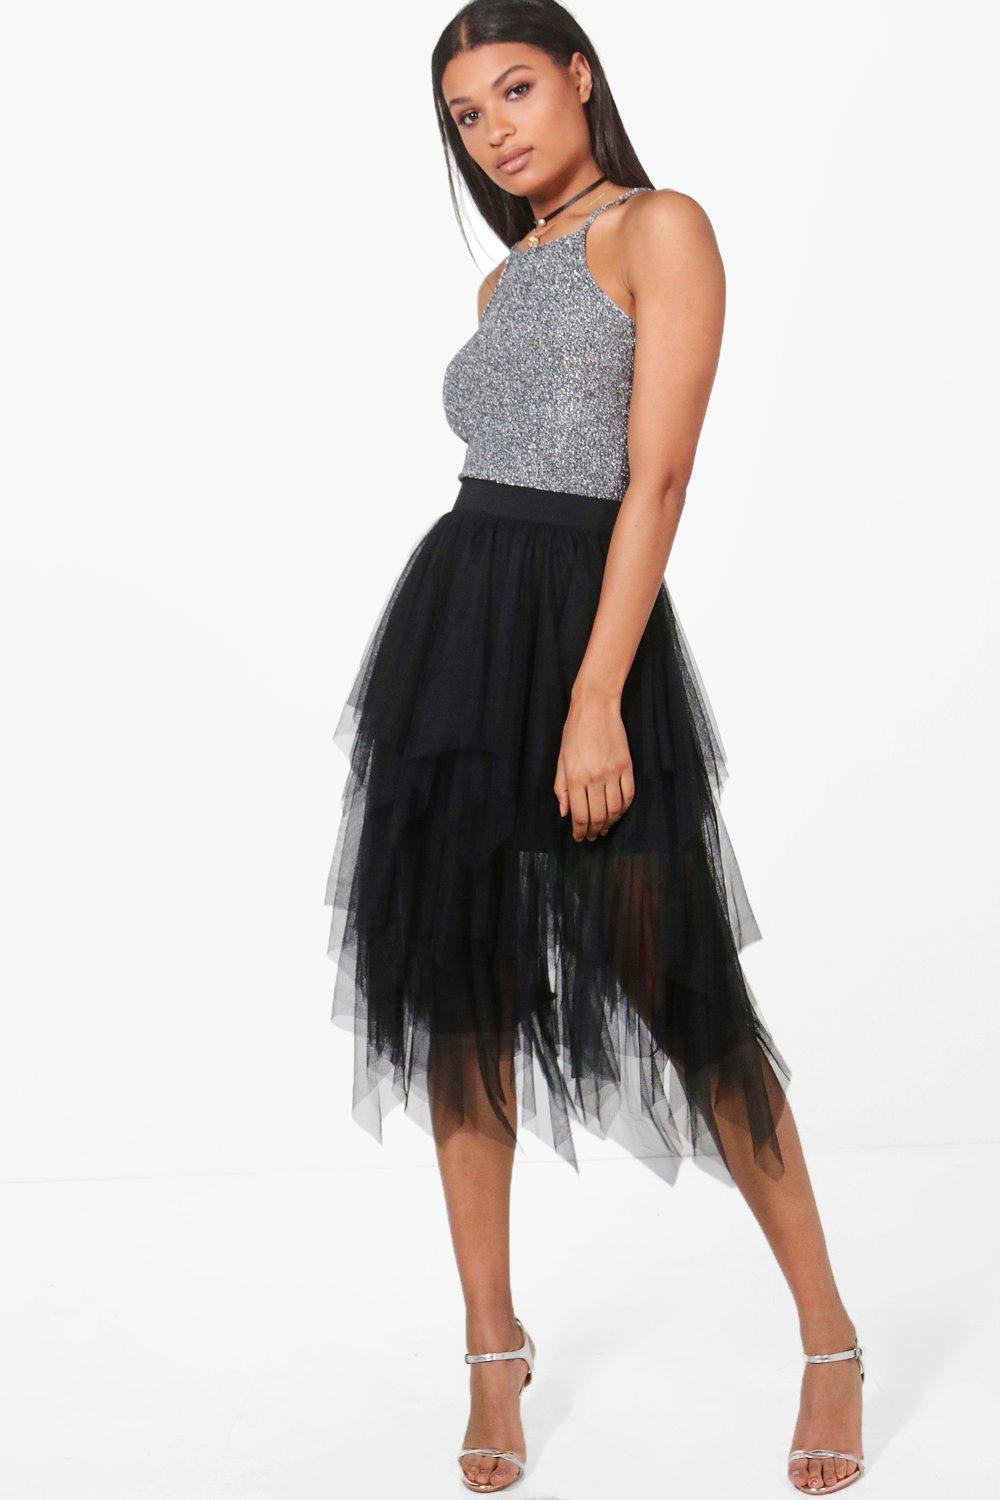 a7eabd447c Boohoo Boutique Nolita Layered Tulle Midi Skirt in Black - Lyst